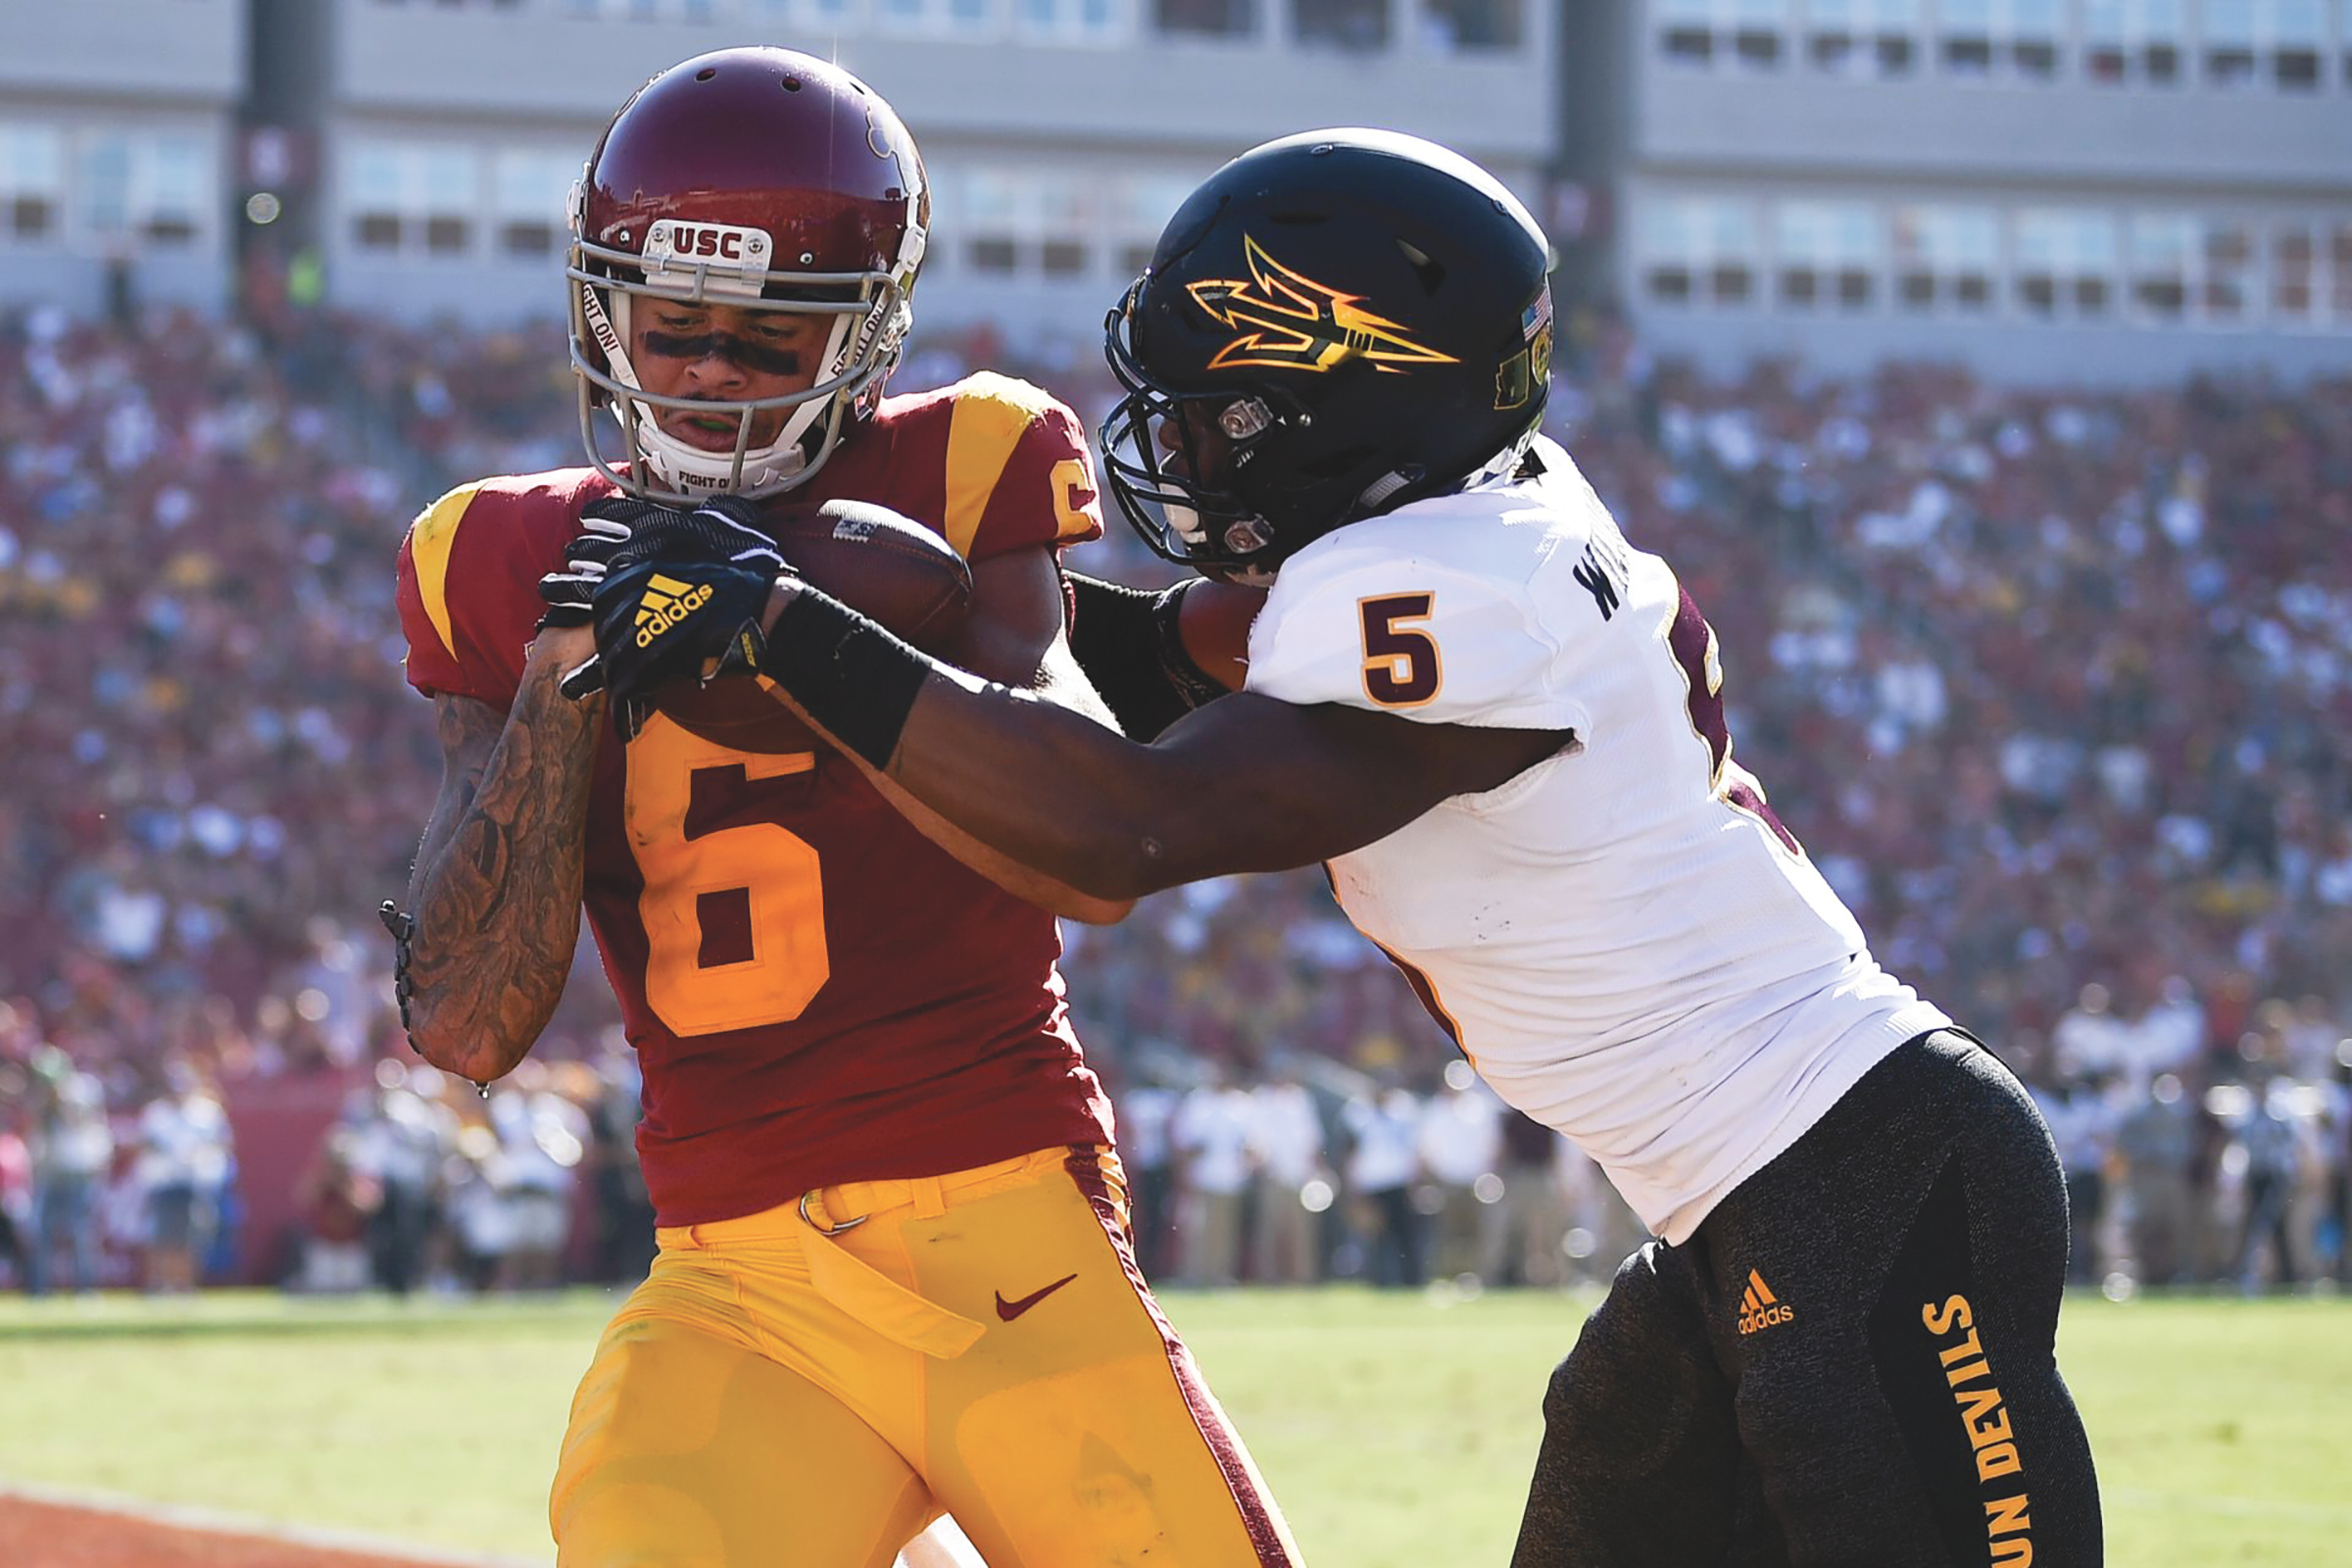 Southern California Trojans wide receiver Michael Pittman Jr. (6) catches a touchdown pass while Arizona State Sun Devils defensive back Kobe Williams (5) defends during the second half at Los Angeles Memorial Coliseum. (Kelvin Kuo-USA TODAY courtesy photo)